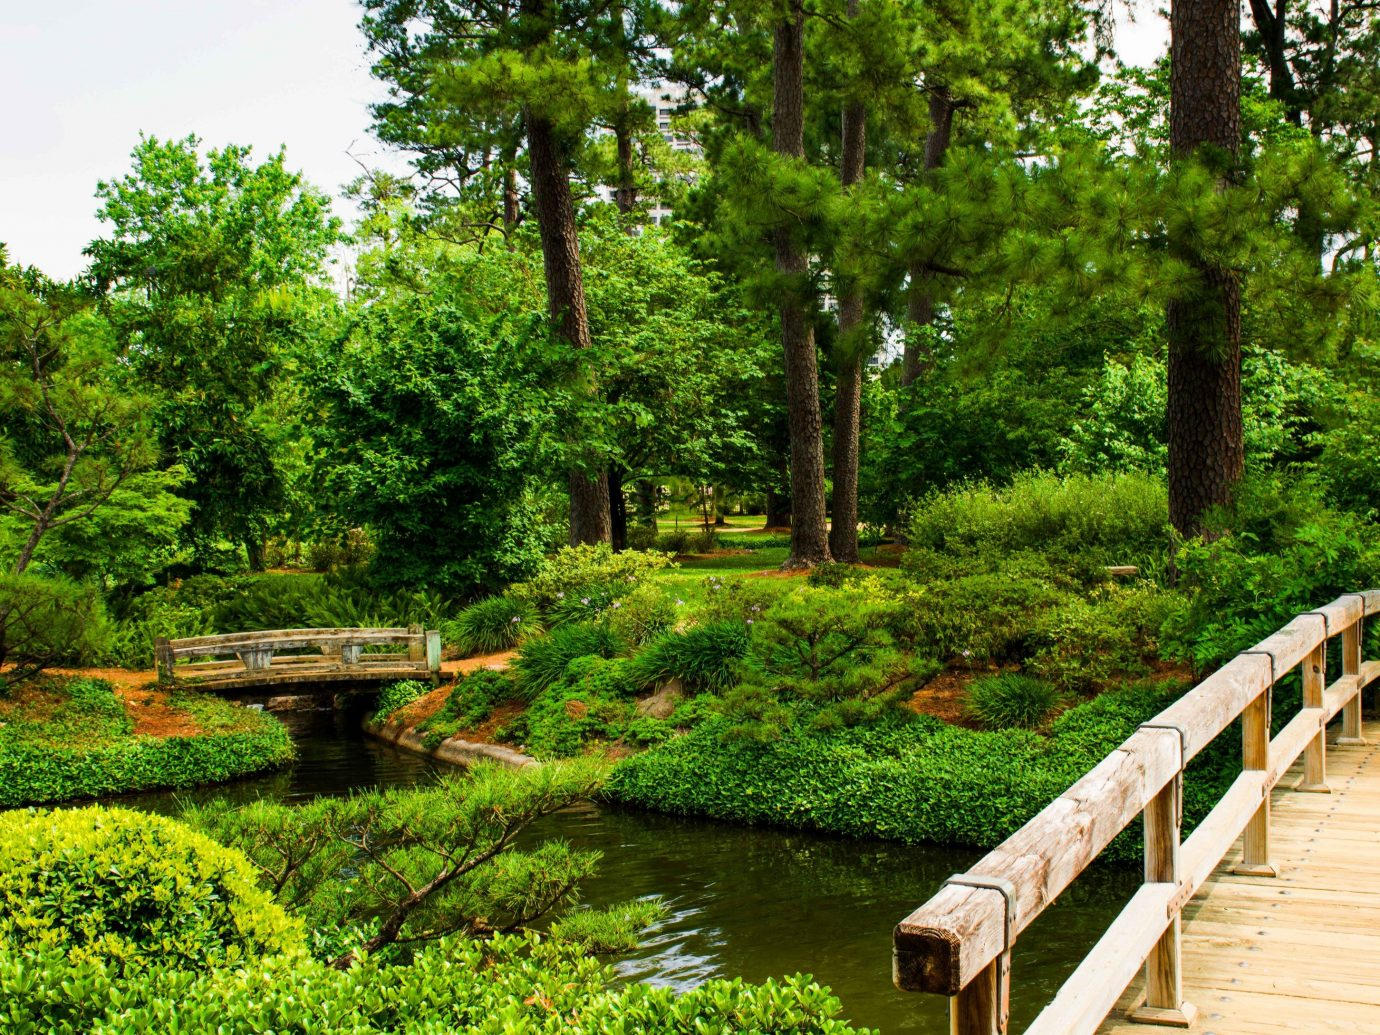 Houston Outdoors + Adventure Texas Trip Ideas tree outdoor bench grass Nature vegetation botanical garden Garden nature reserve park plant pond wooden water landscape wetland reflection bank landscaping watercourse riparian forest shrub bayou old growth forest walkway wood surrounded